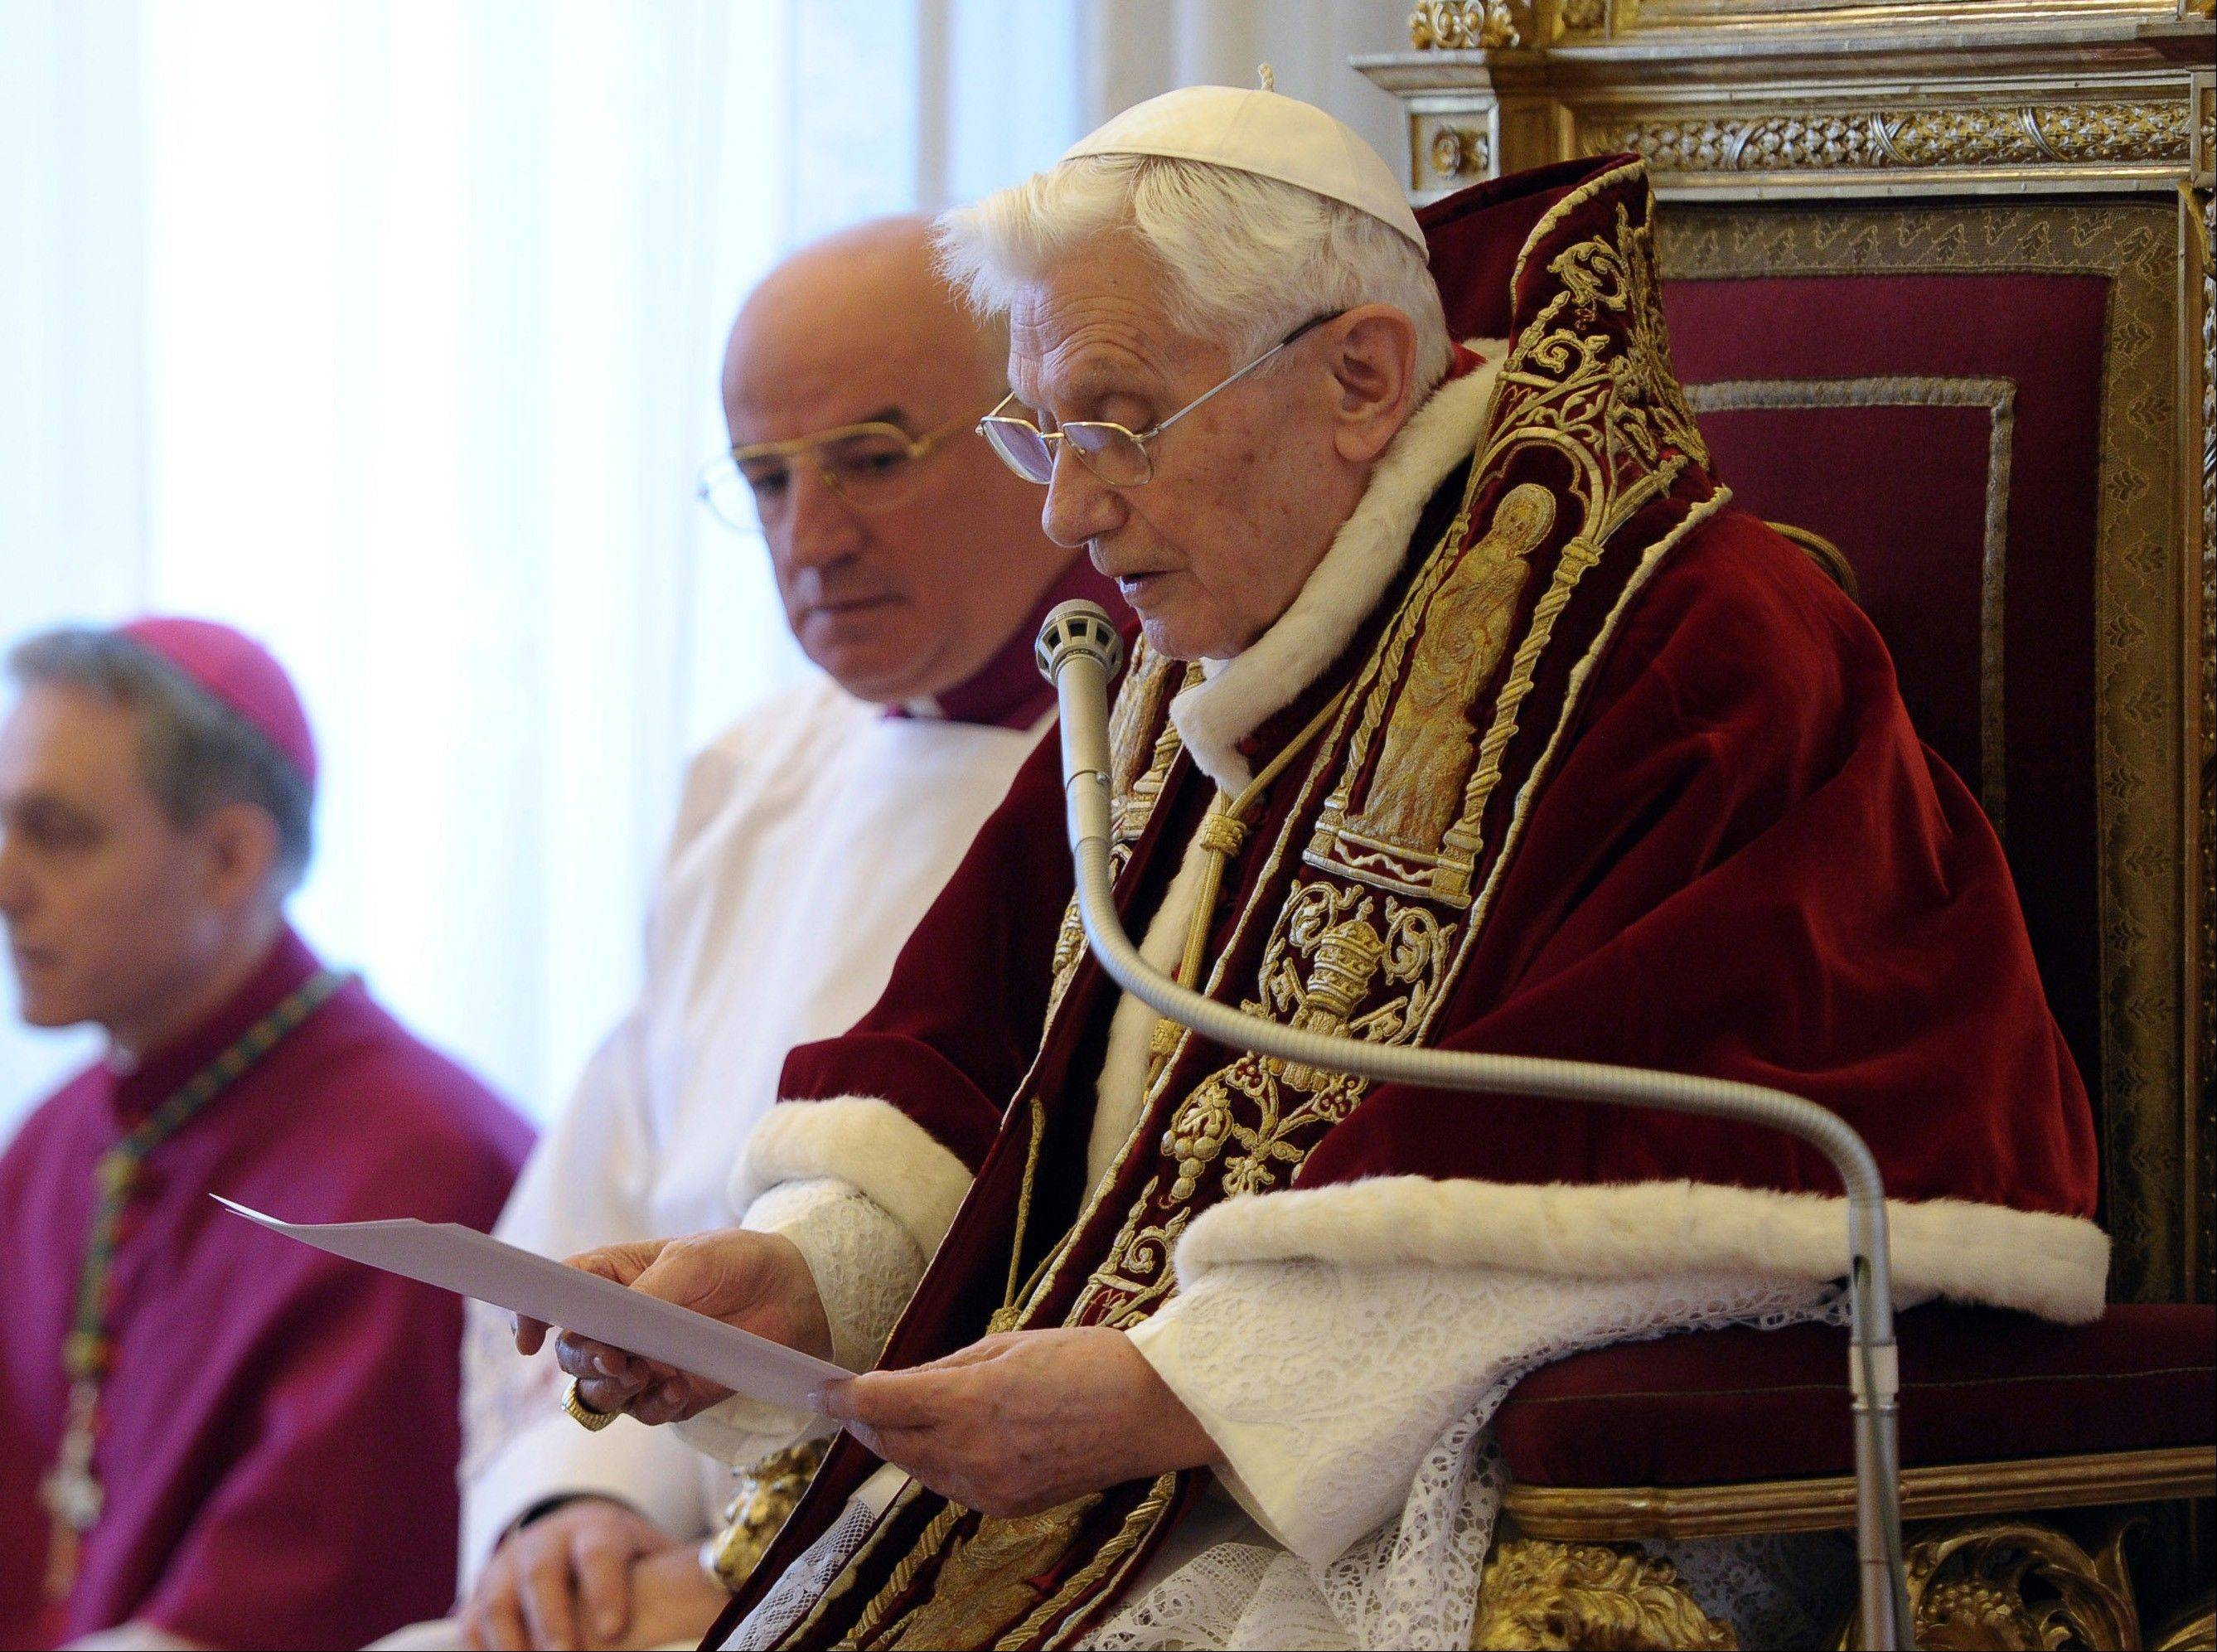 Pope Benedict XVI reads a document in Latin where he announces his resignation, during a meeting of Vatican cardinals at the Vatican Monday.